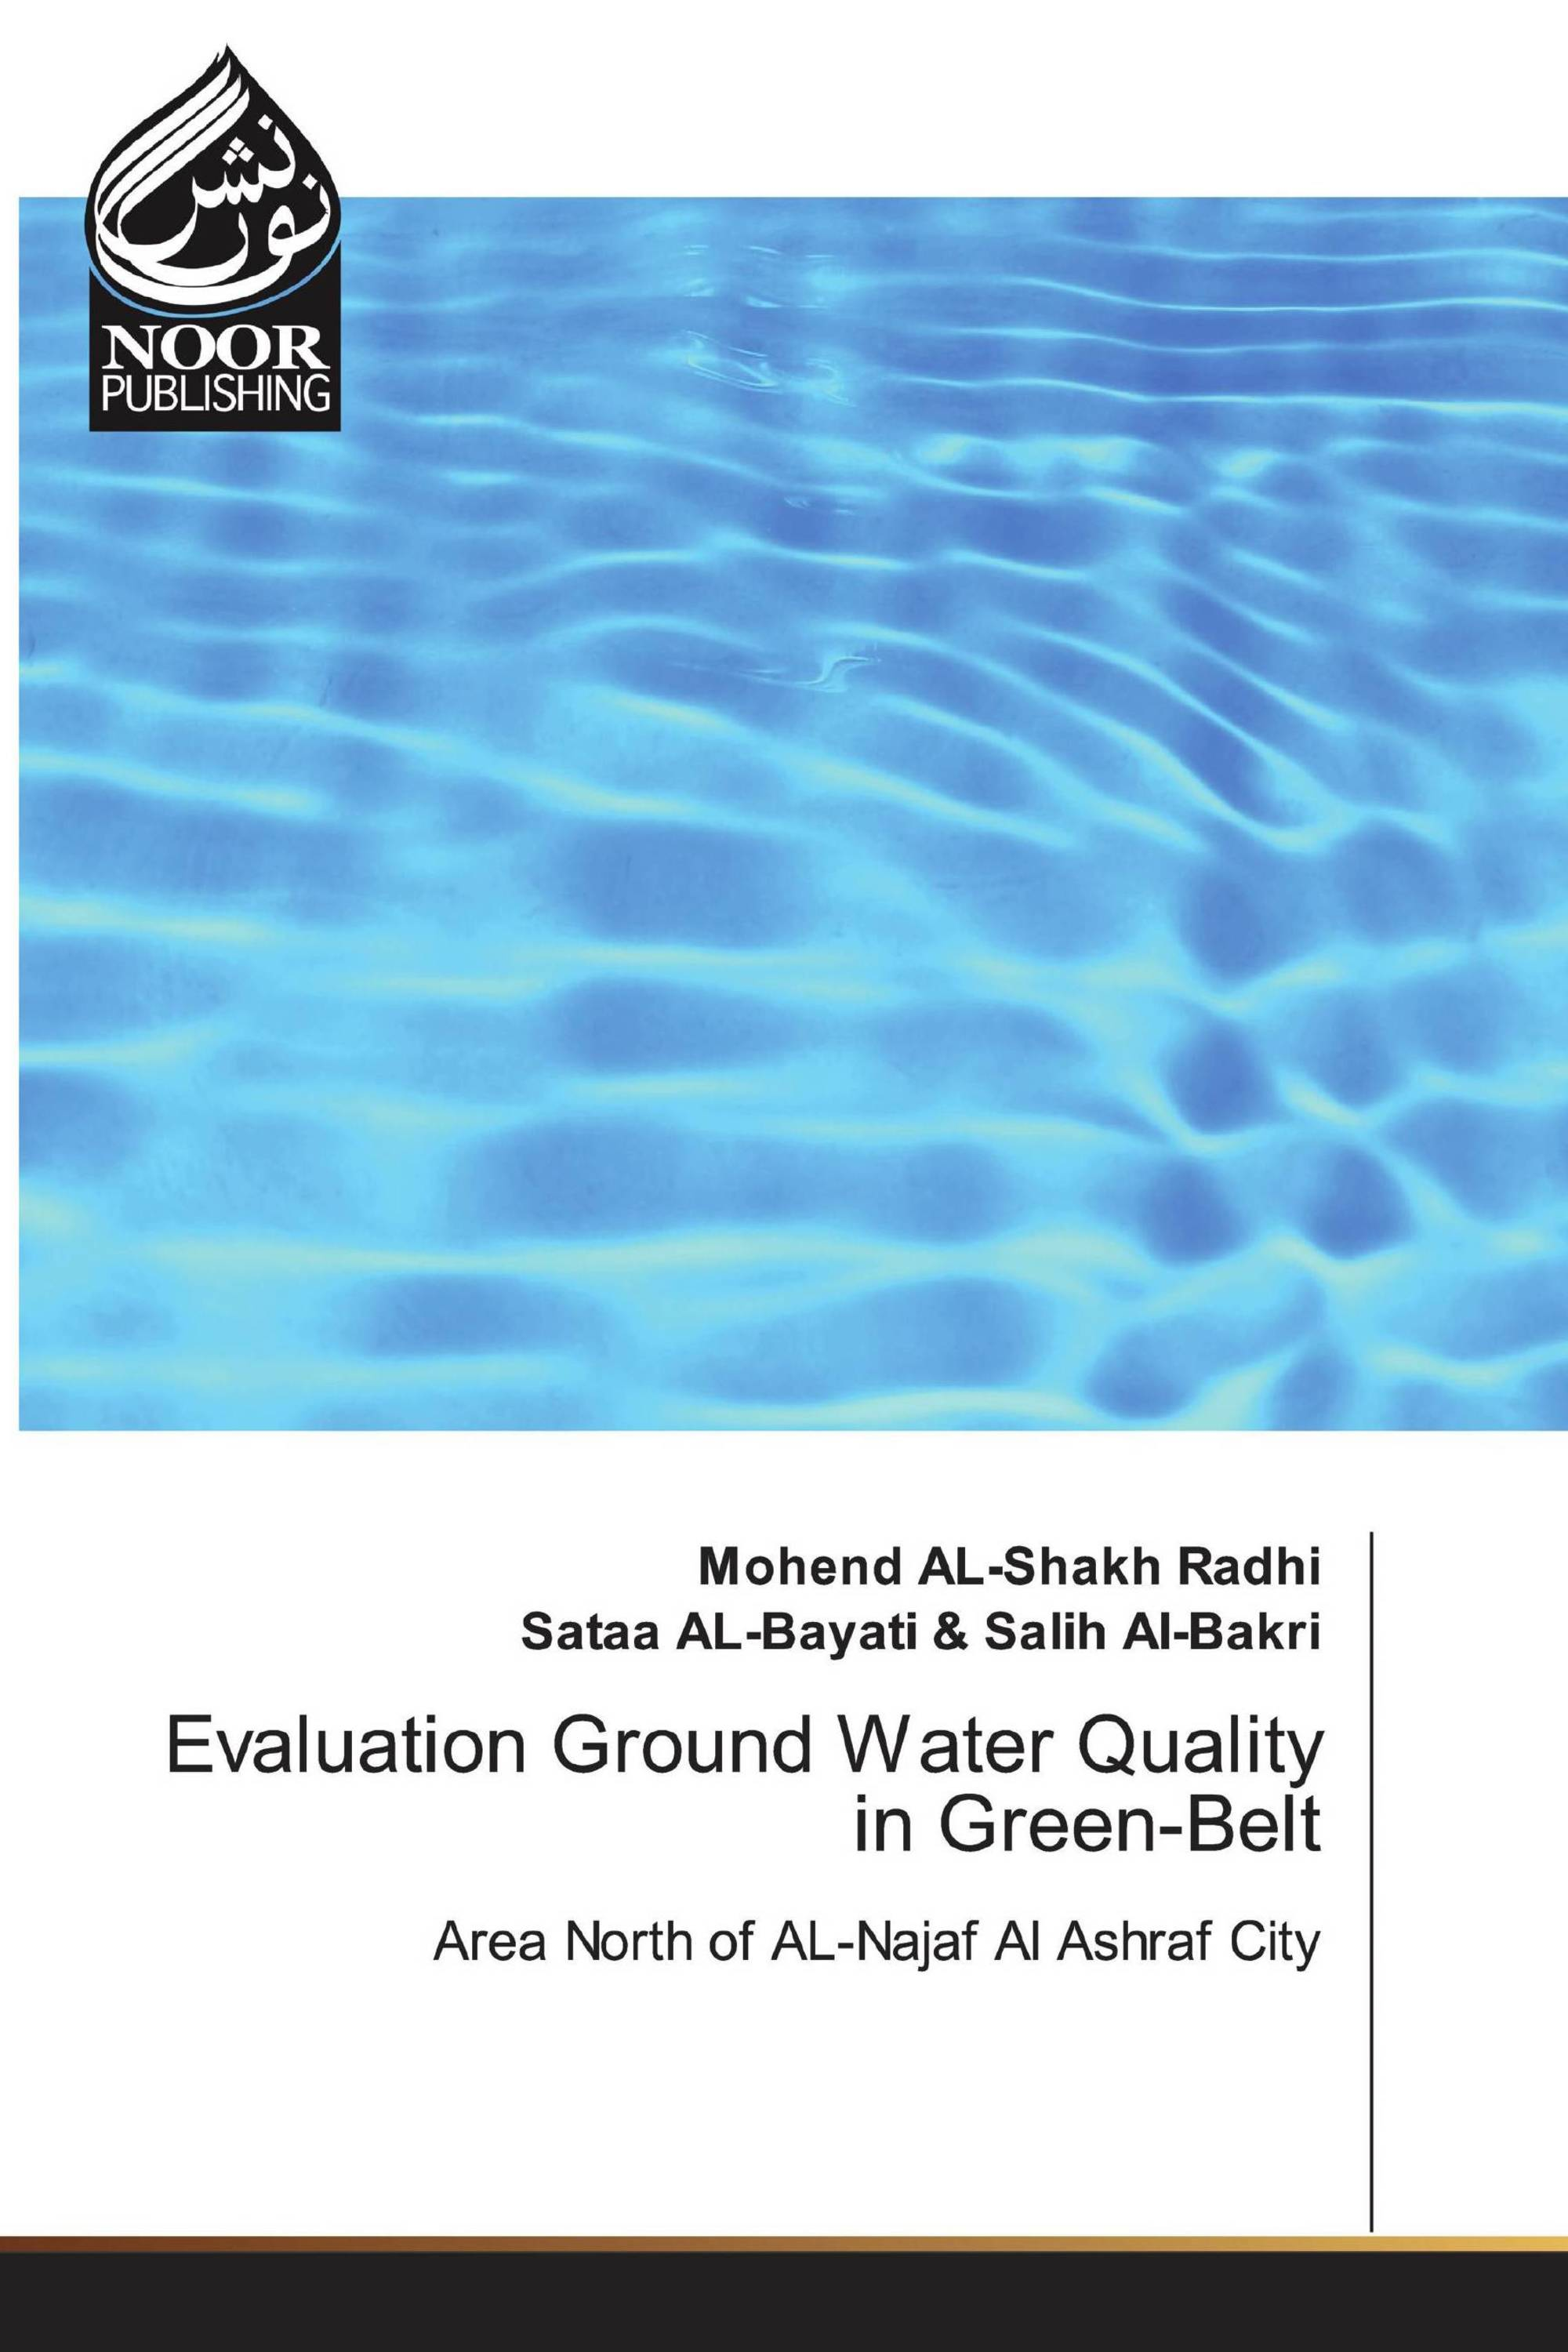 Evaluation Ground Water Quality in Green-Belt